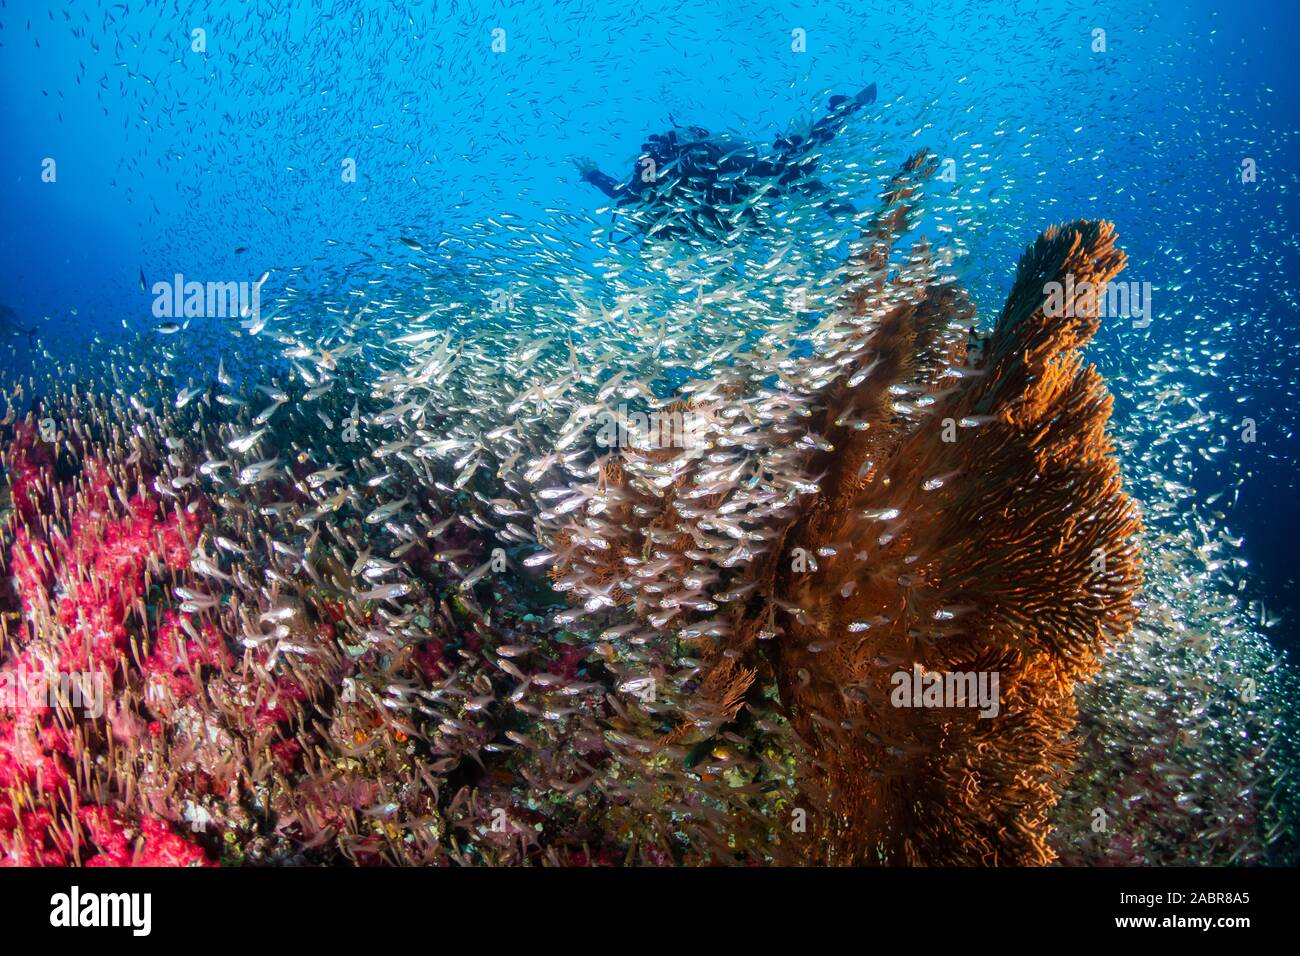 SCUBA divers on a colorful, tropical coral reef in Thailand Stock Photo